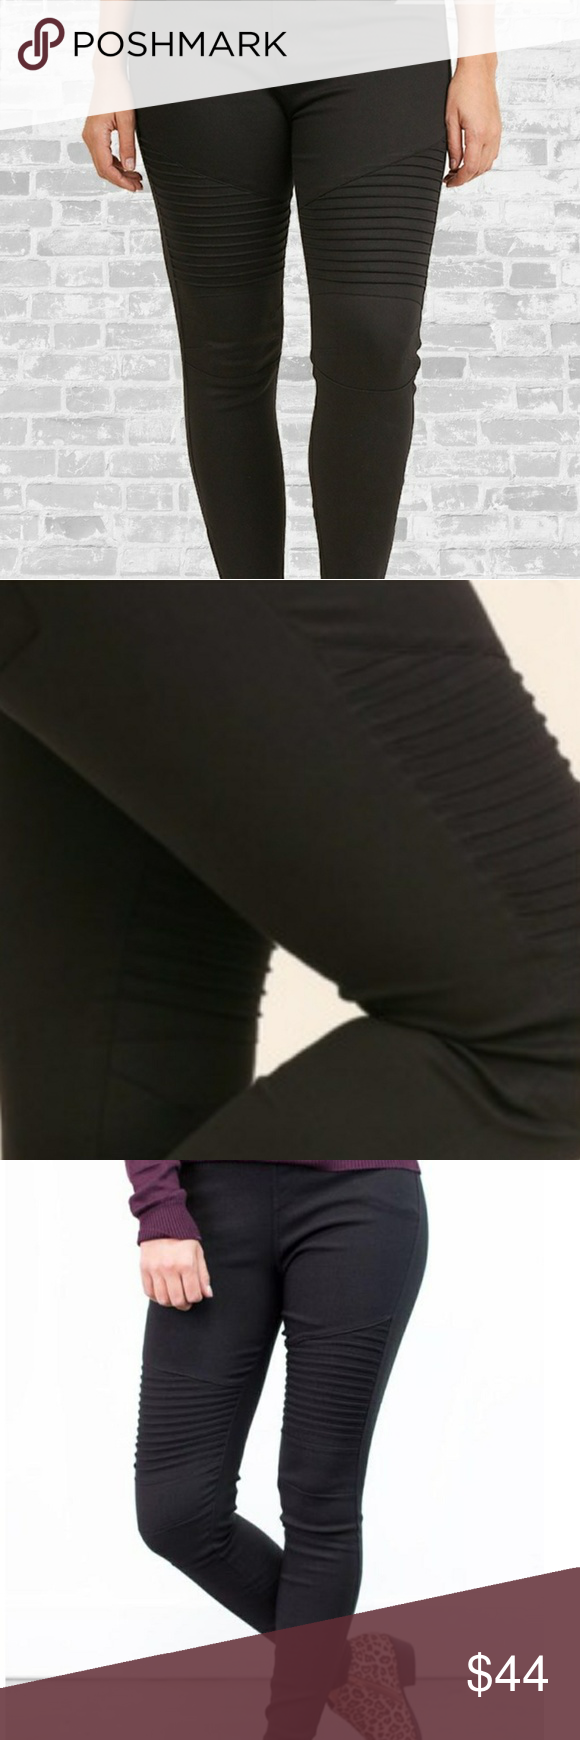 Plus Size Moto Jeggings These Moto Jeggings are a lightweight, super soft denim twill. Elastic waist (so comfy), moto styling on the legs. These must haves will match with everything!  I have 2 pair myself.  They are TTS and believe me You are going to wear them till they fall apart 😜. You will ABSOLUTELY LOVE them or...I will buy them back (really I will)!  You can't lose👍 Pants